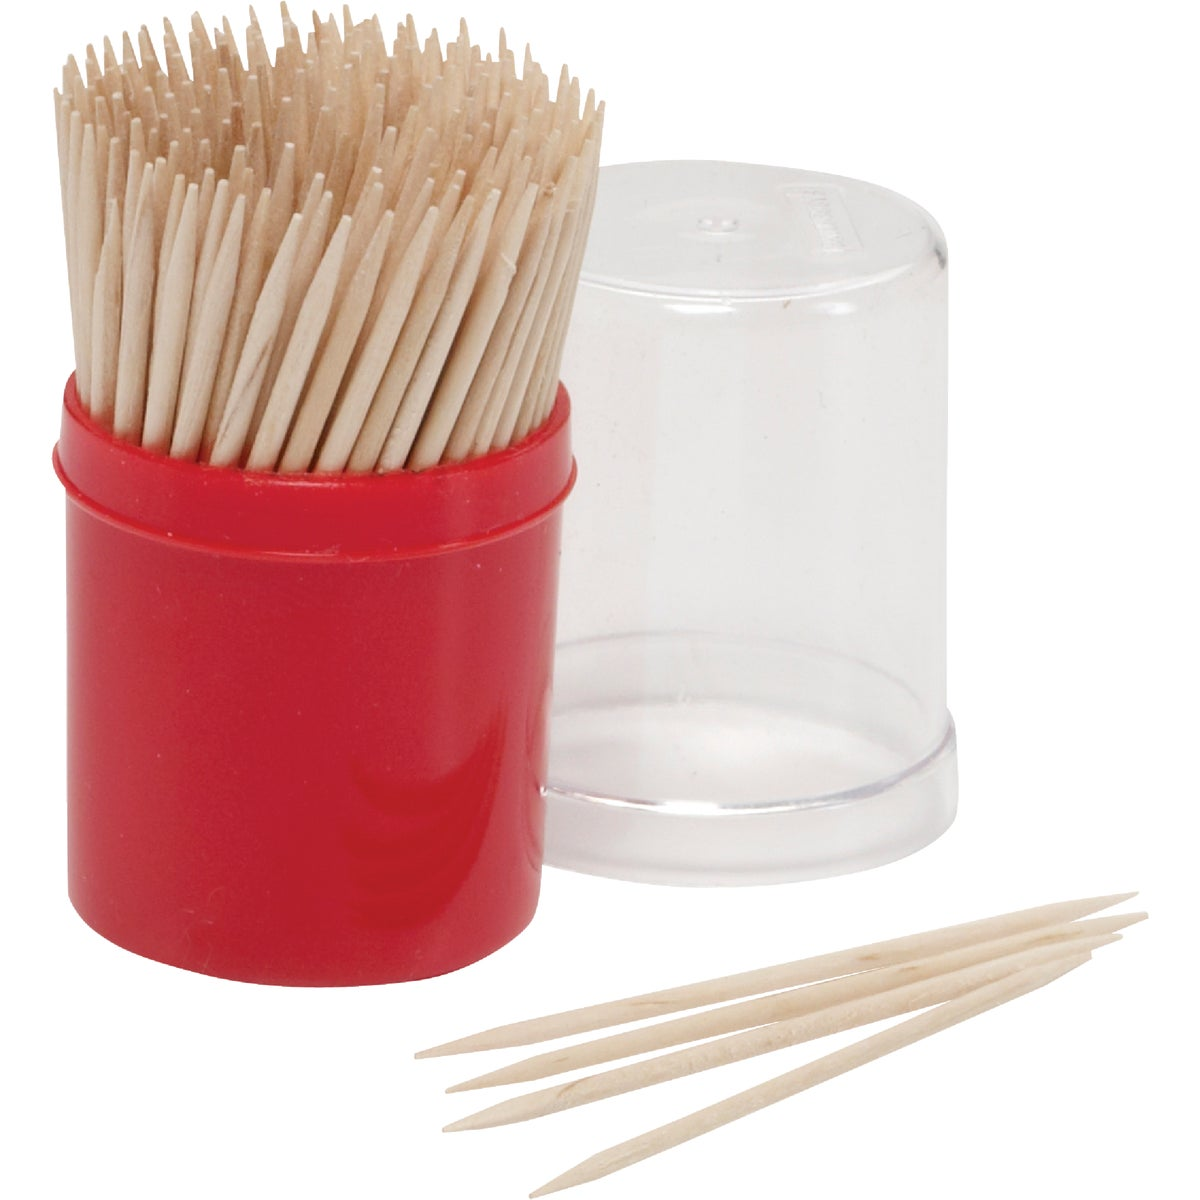 TOOTHPICK DISPENSER - 5078593 by Lifetime Hoan